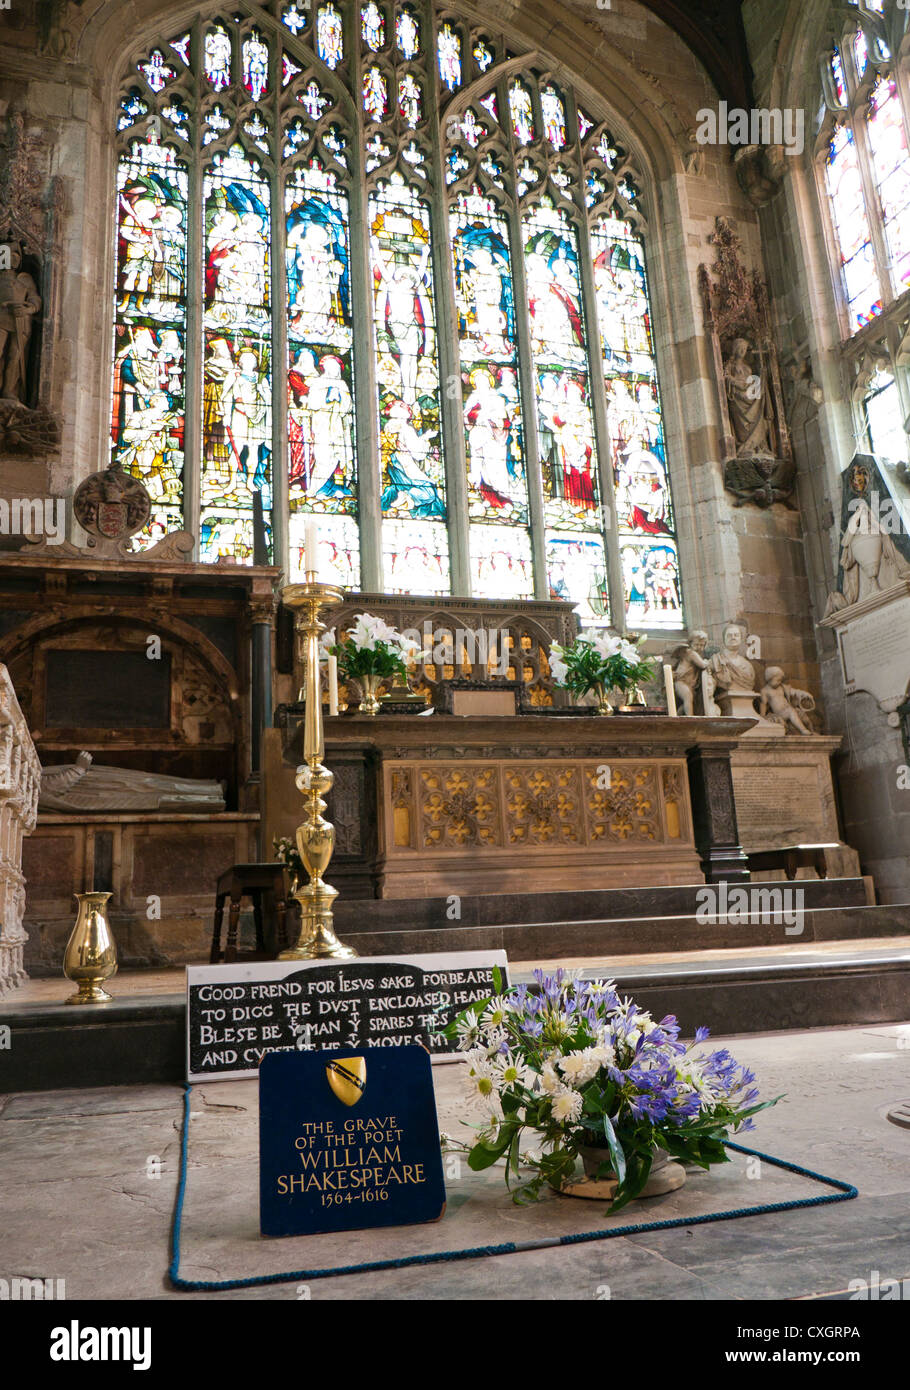 The grave of William Shakespeare inside Holy Trinity Church in  Stratford upon Avon in England - Stock Image